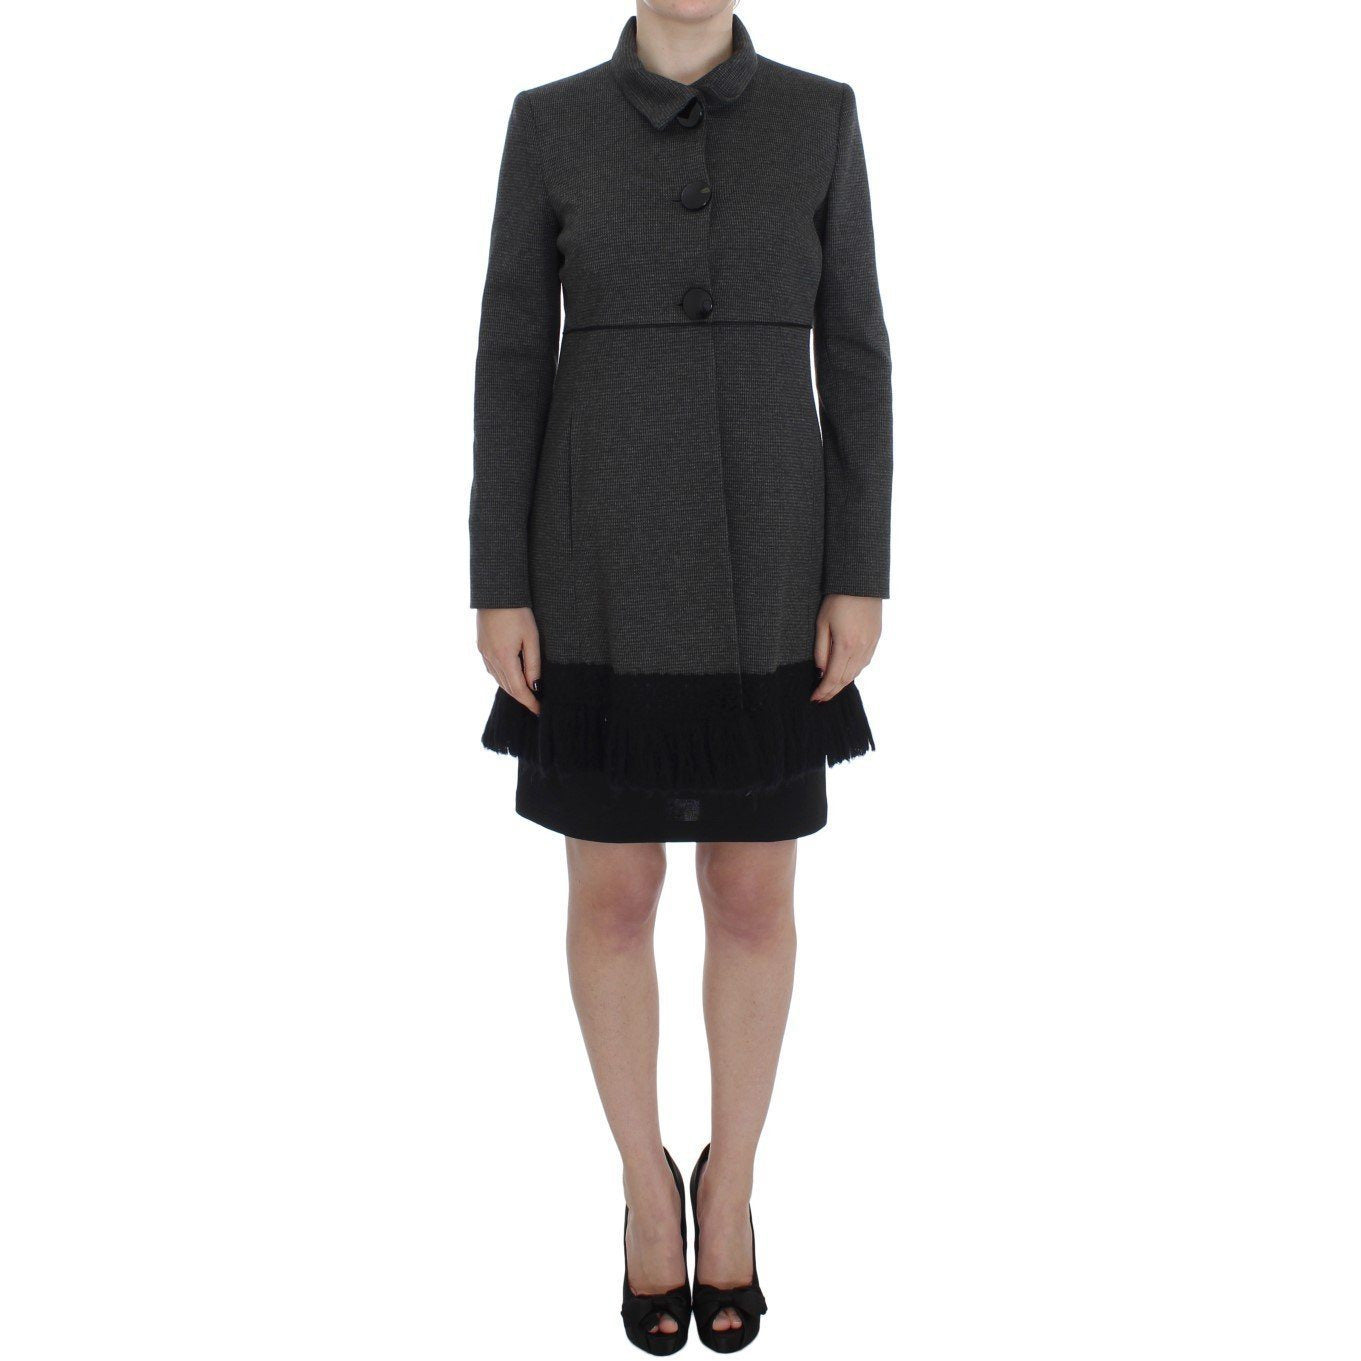 Gray Wool Button Collar Coat Jacket BENCIVENGA